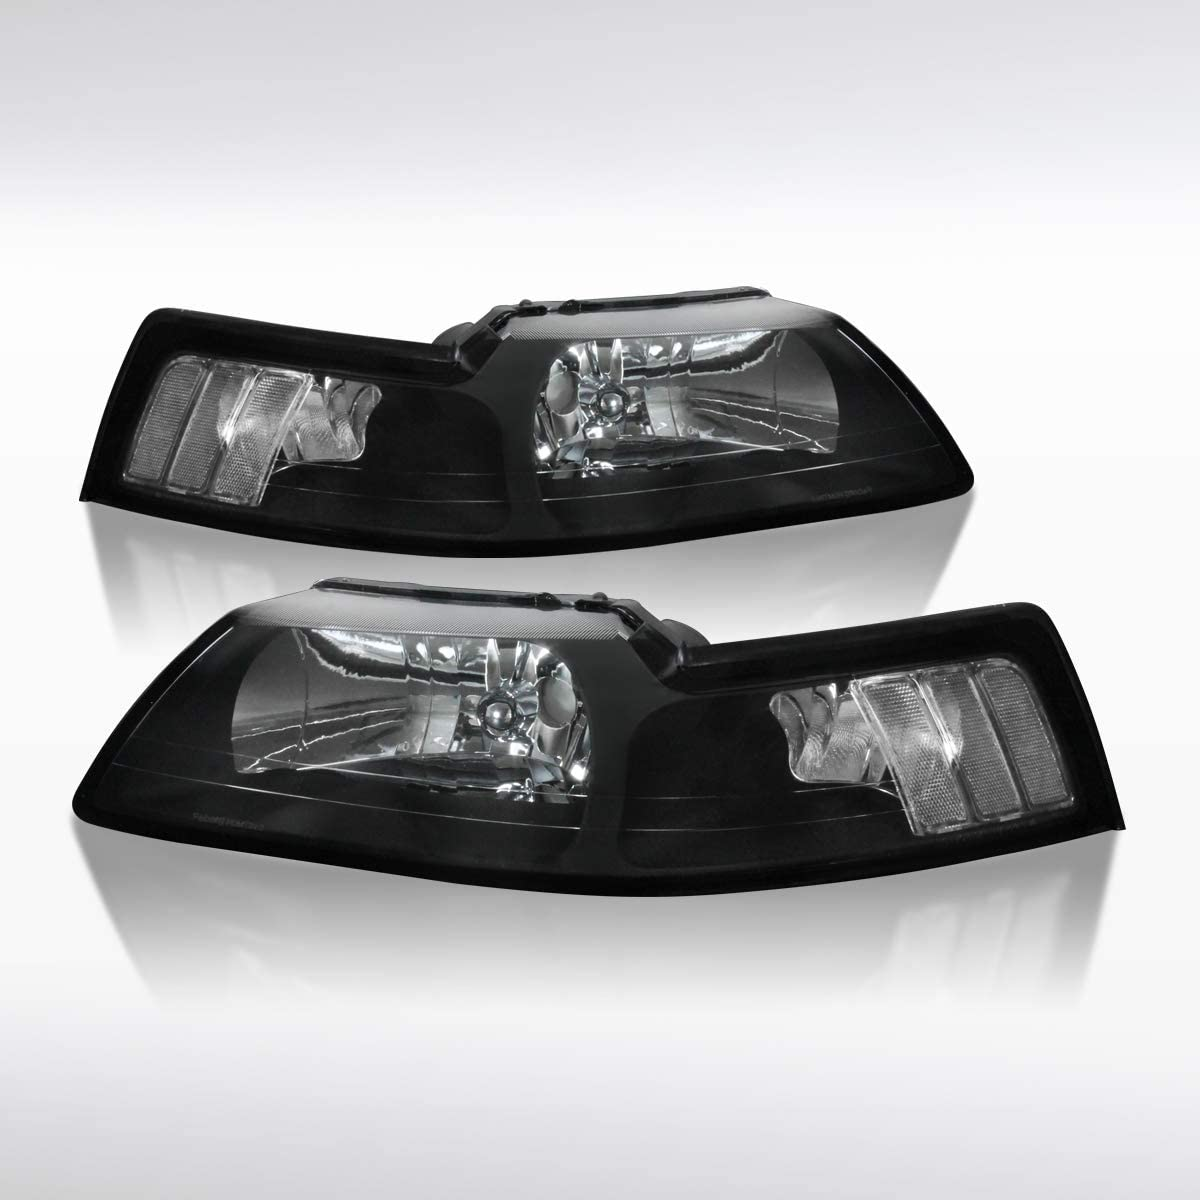 Autozensation for In stock 1999-2004 Ford Mustang Headlights Black Lamps Max 75% OFF